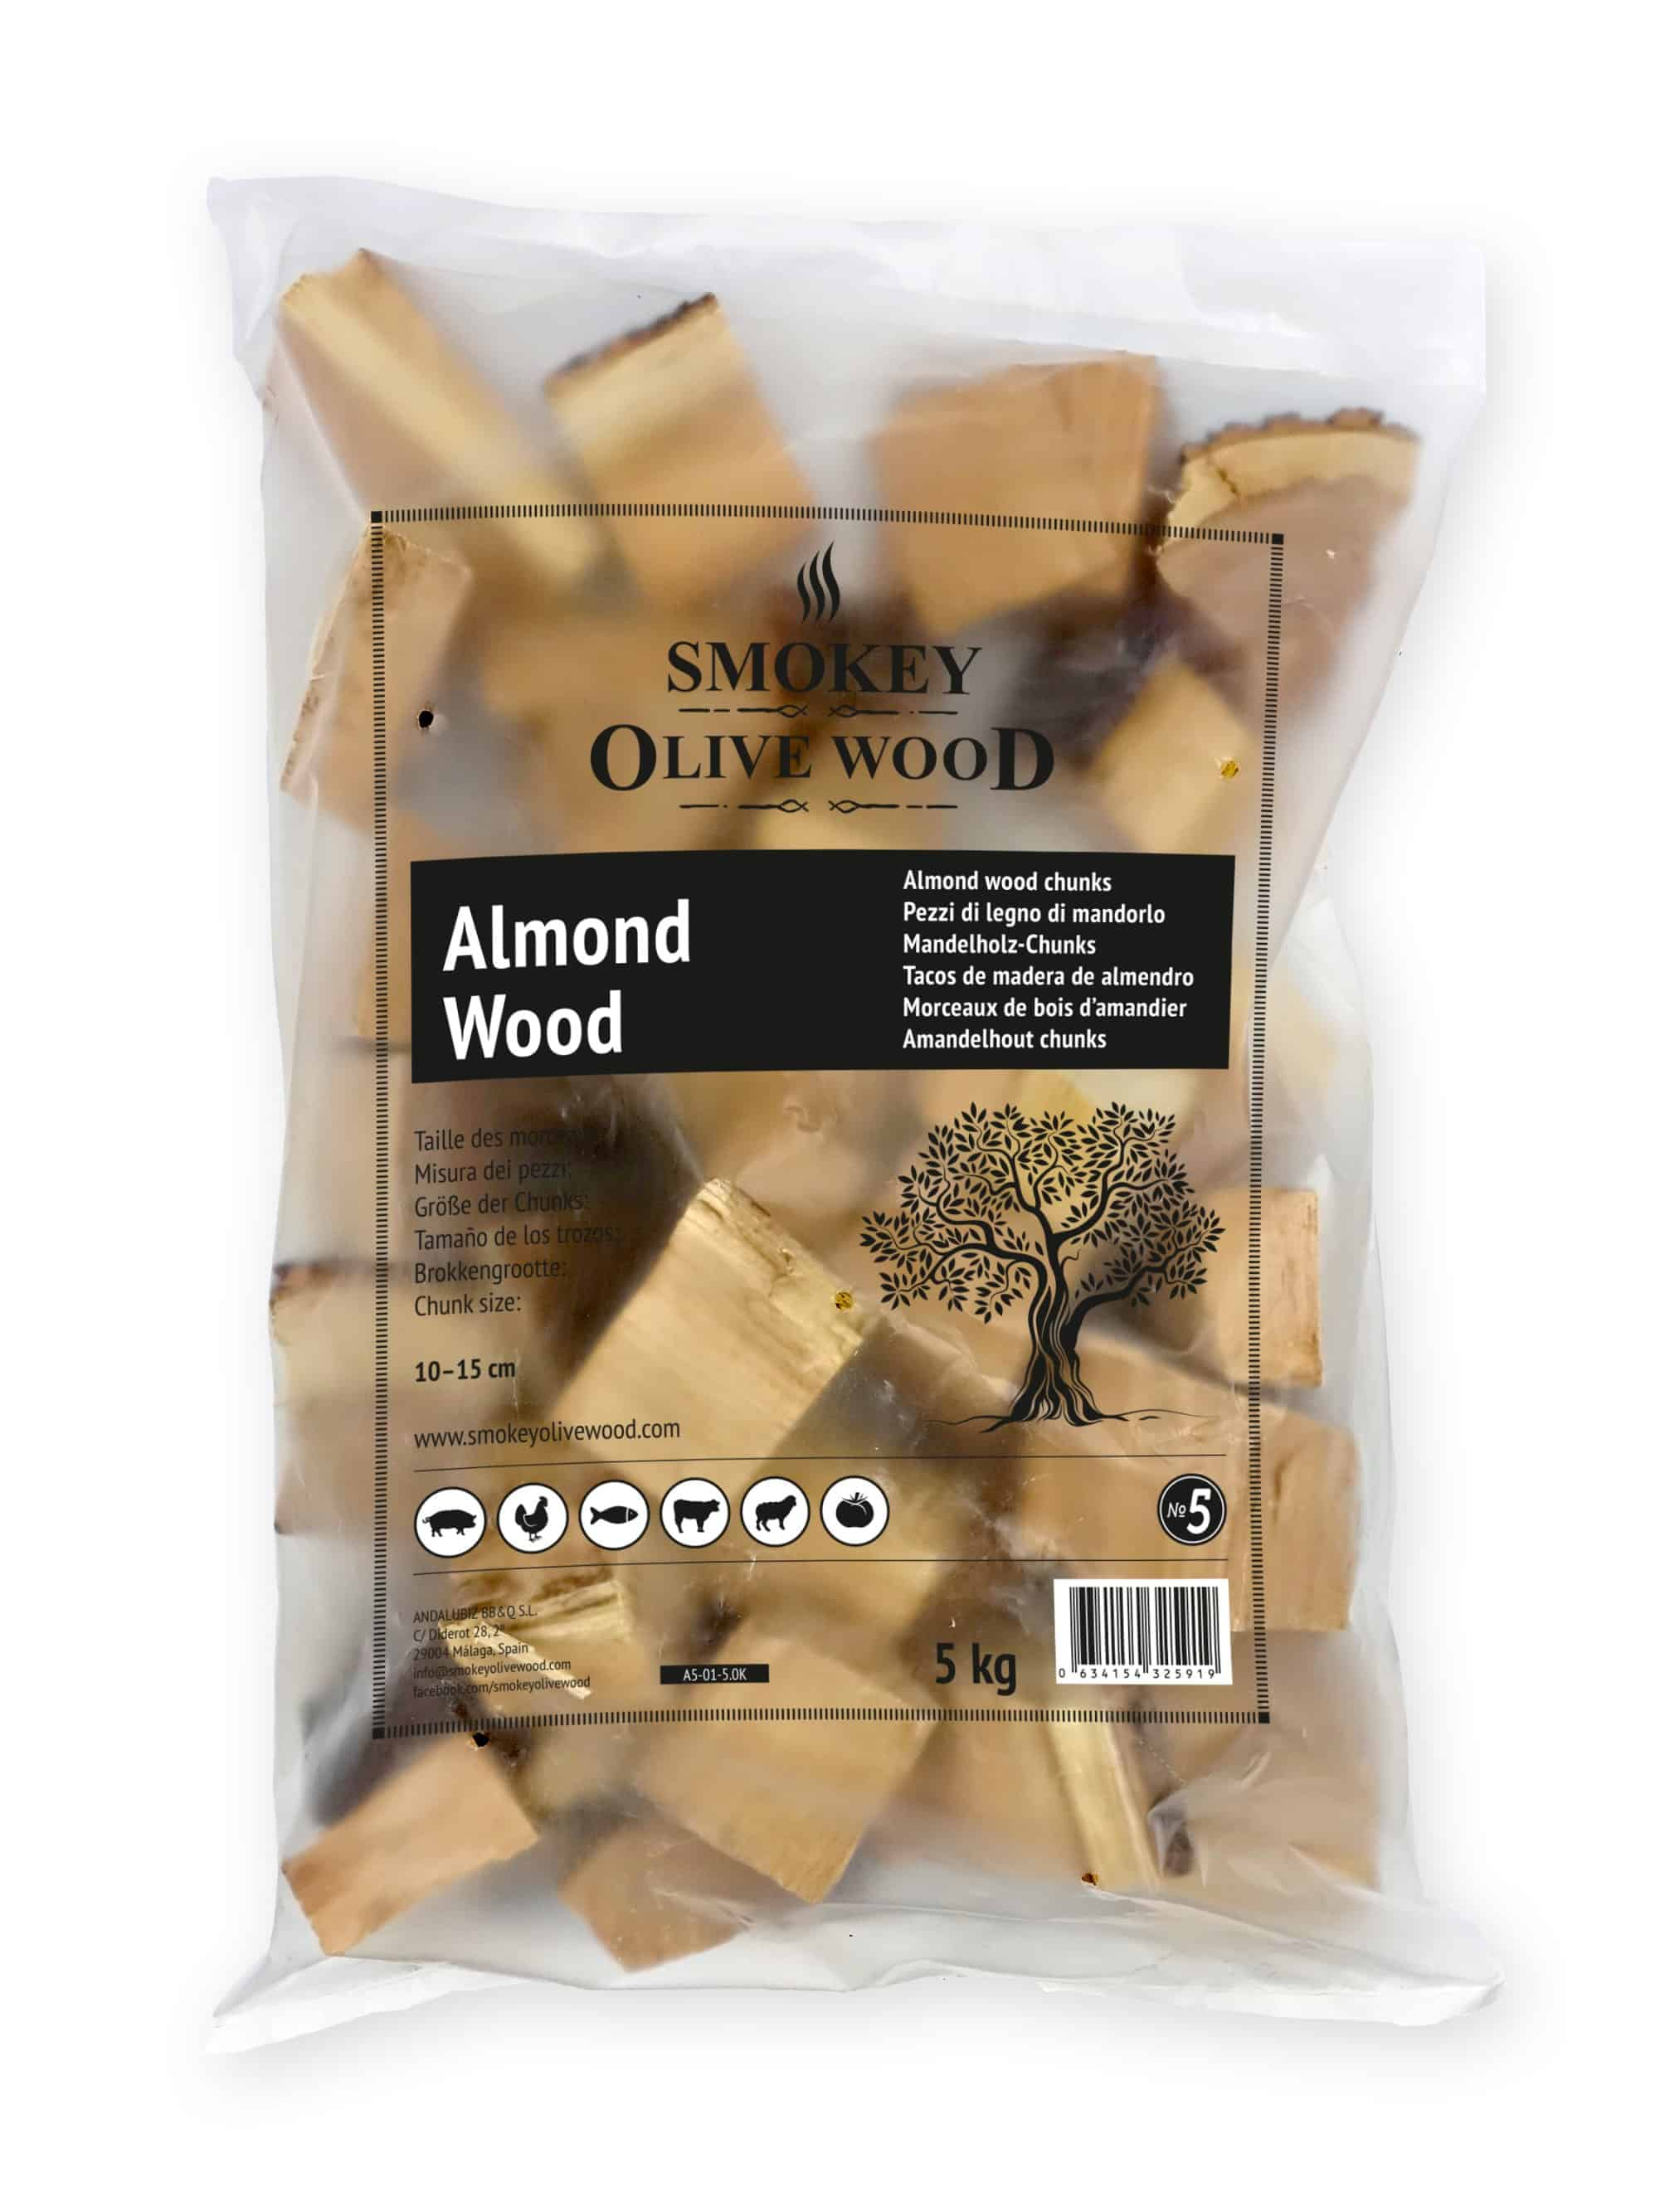 Smokey Olive Wood almond chunks Smoker BBQ Chips Grill